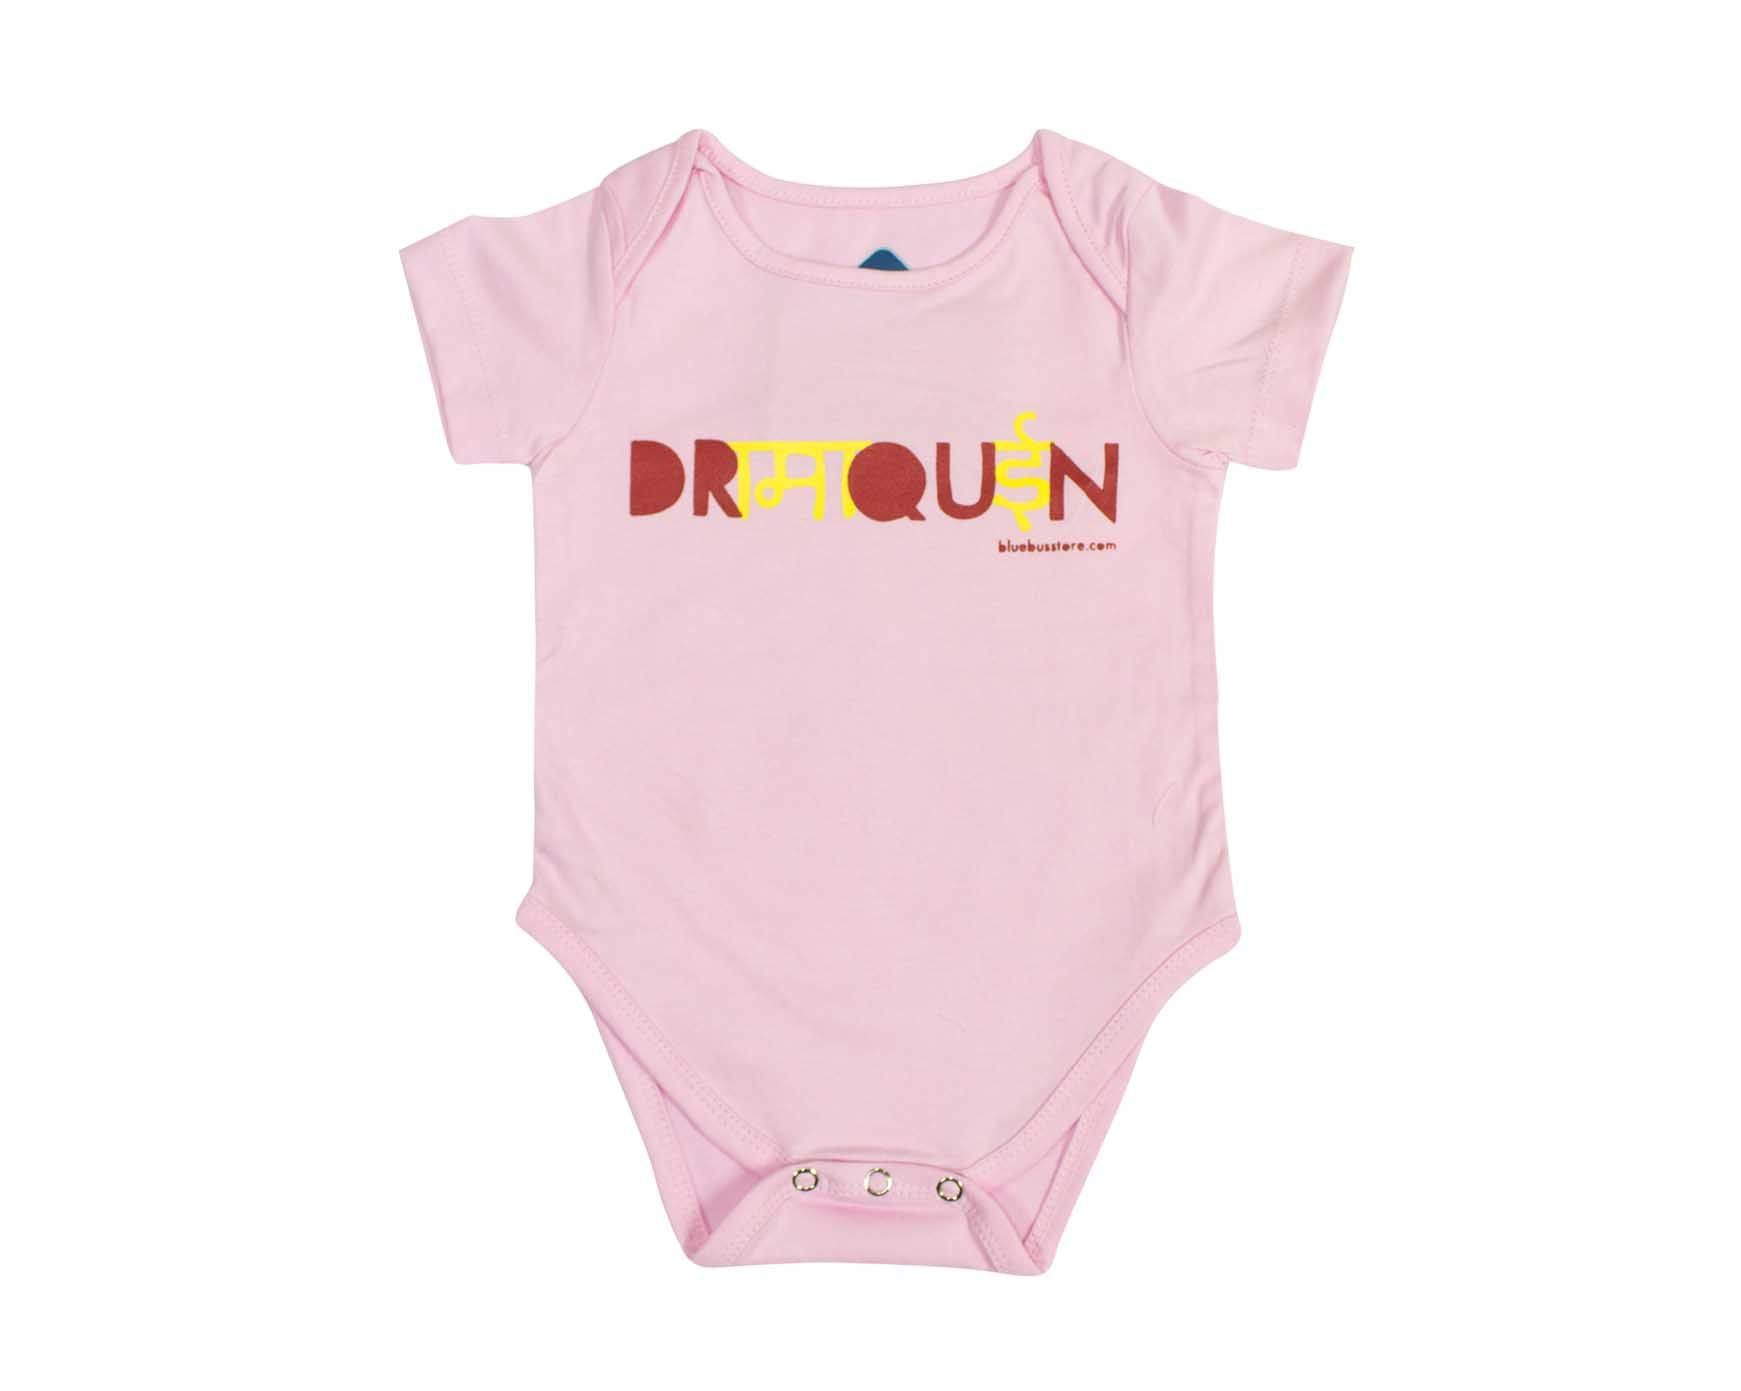 DRAMA QUEEN | Rompers for kids, Unisex baby clothes